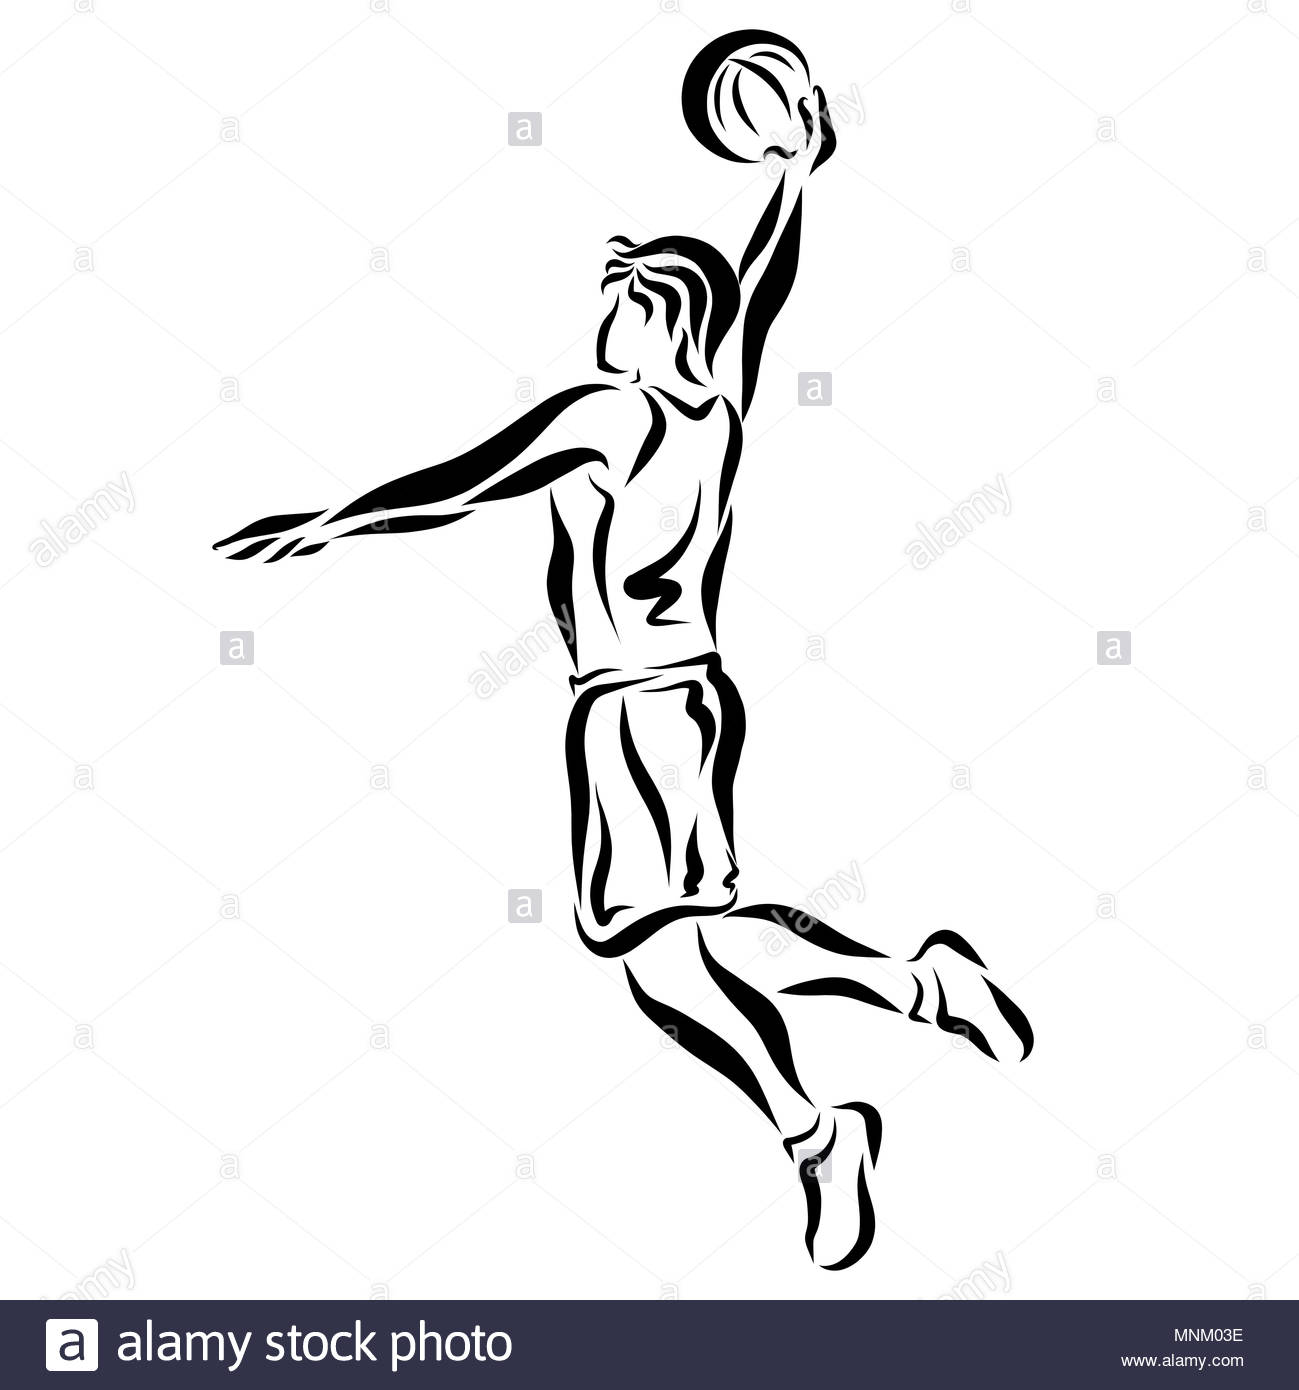 Young basketball player with a ball, jump - Stock Image